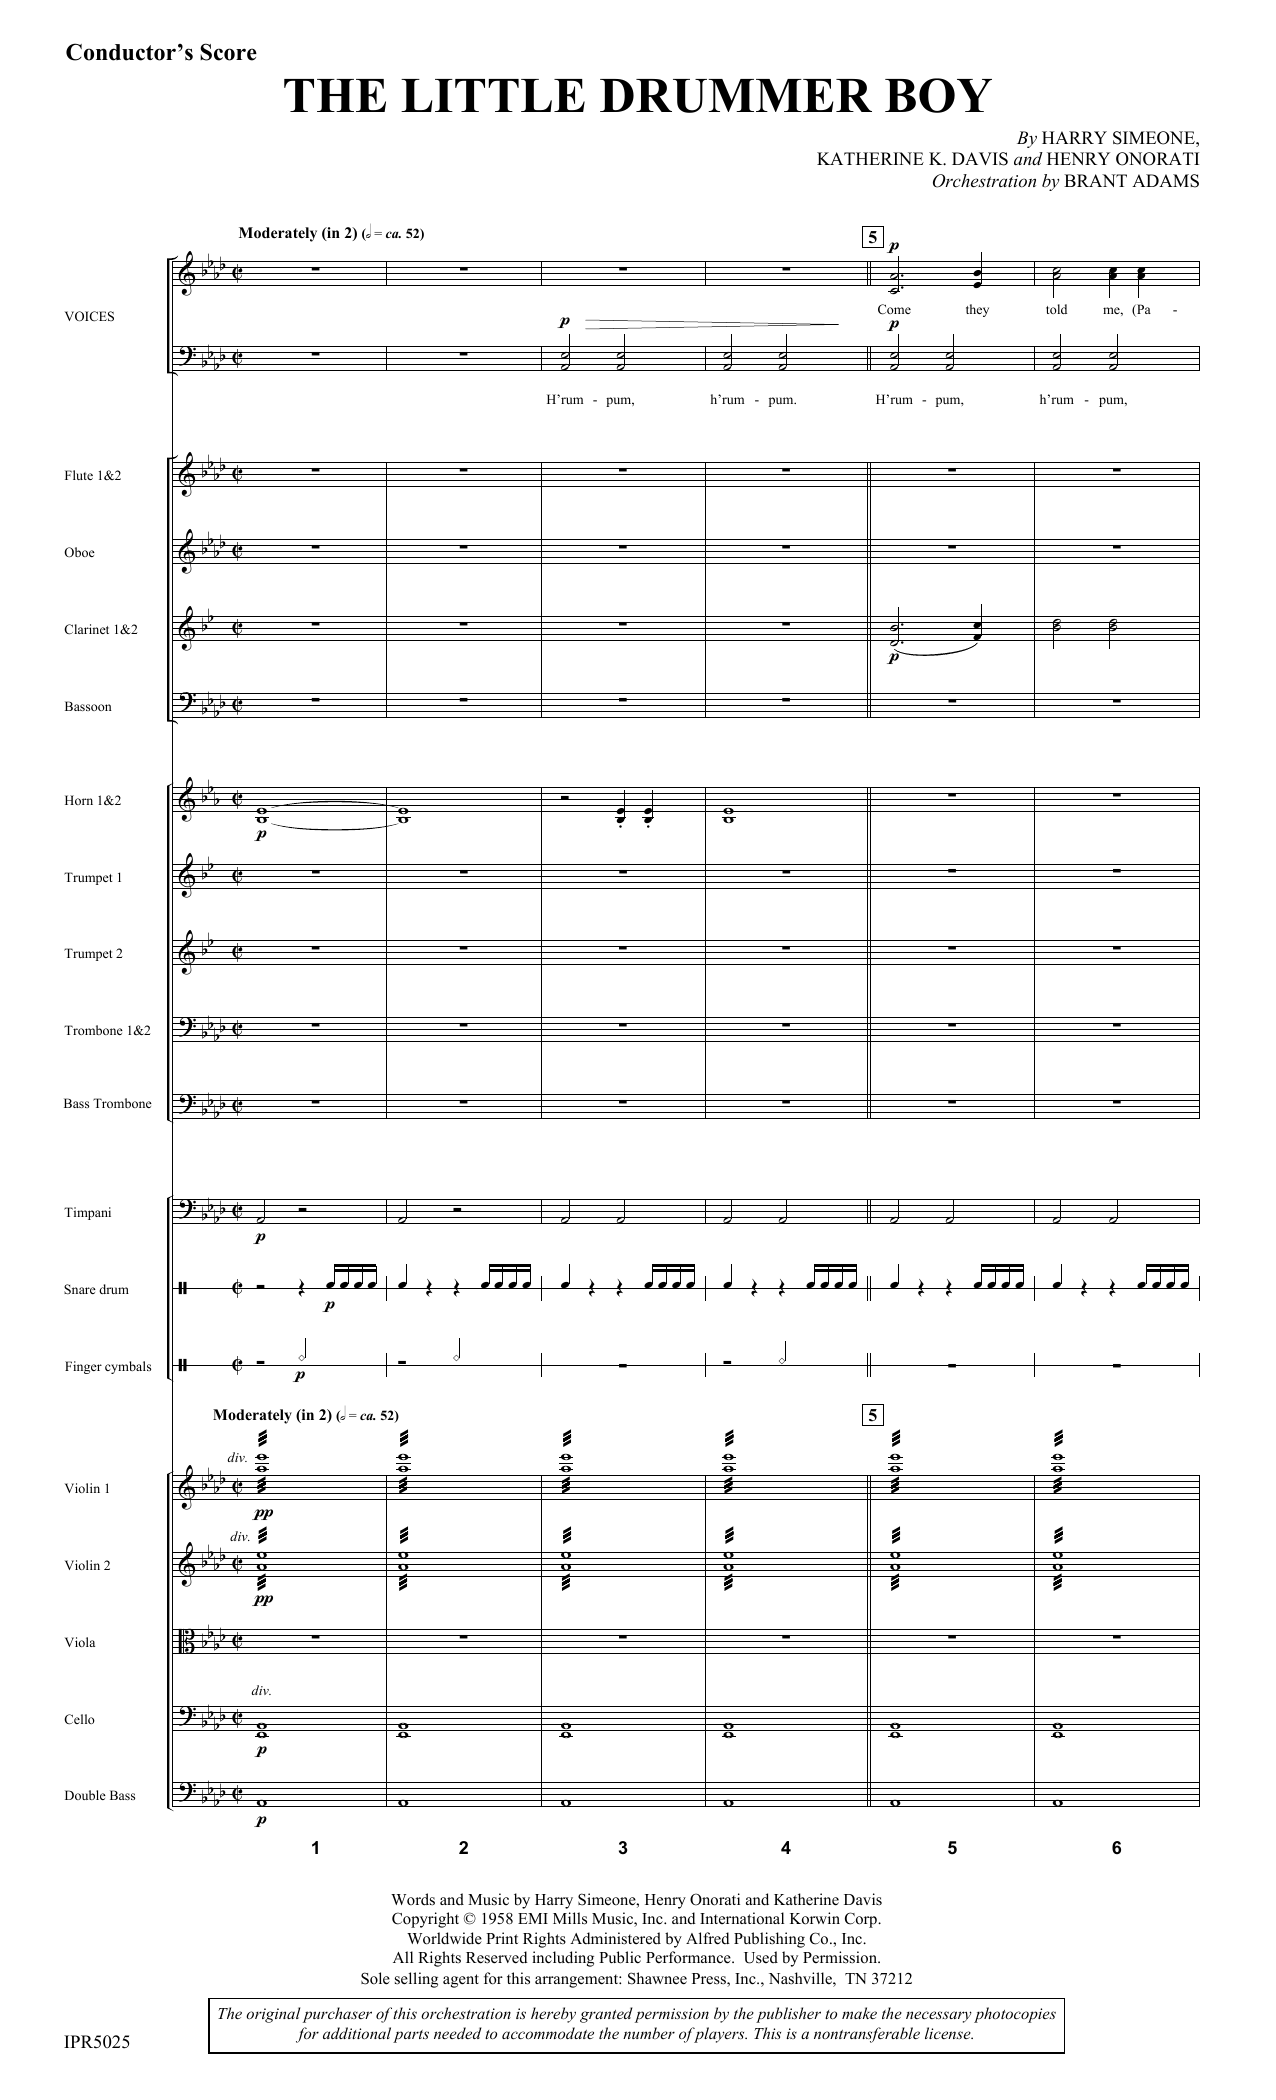 Harry Simeone The Little Drummer Boy - Full Score sheet music notes and chords. Download Printable PDF.